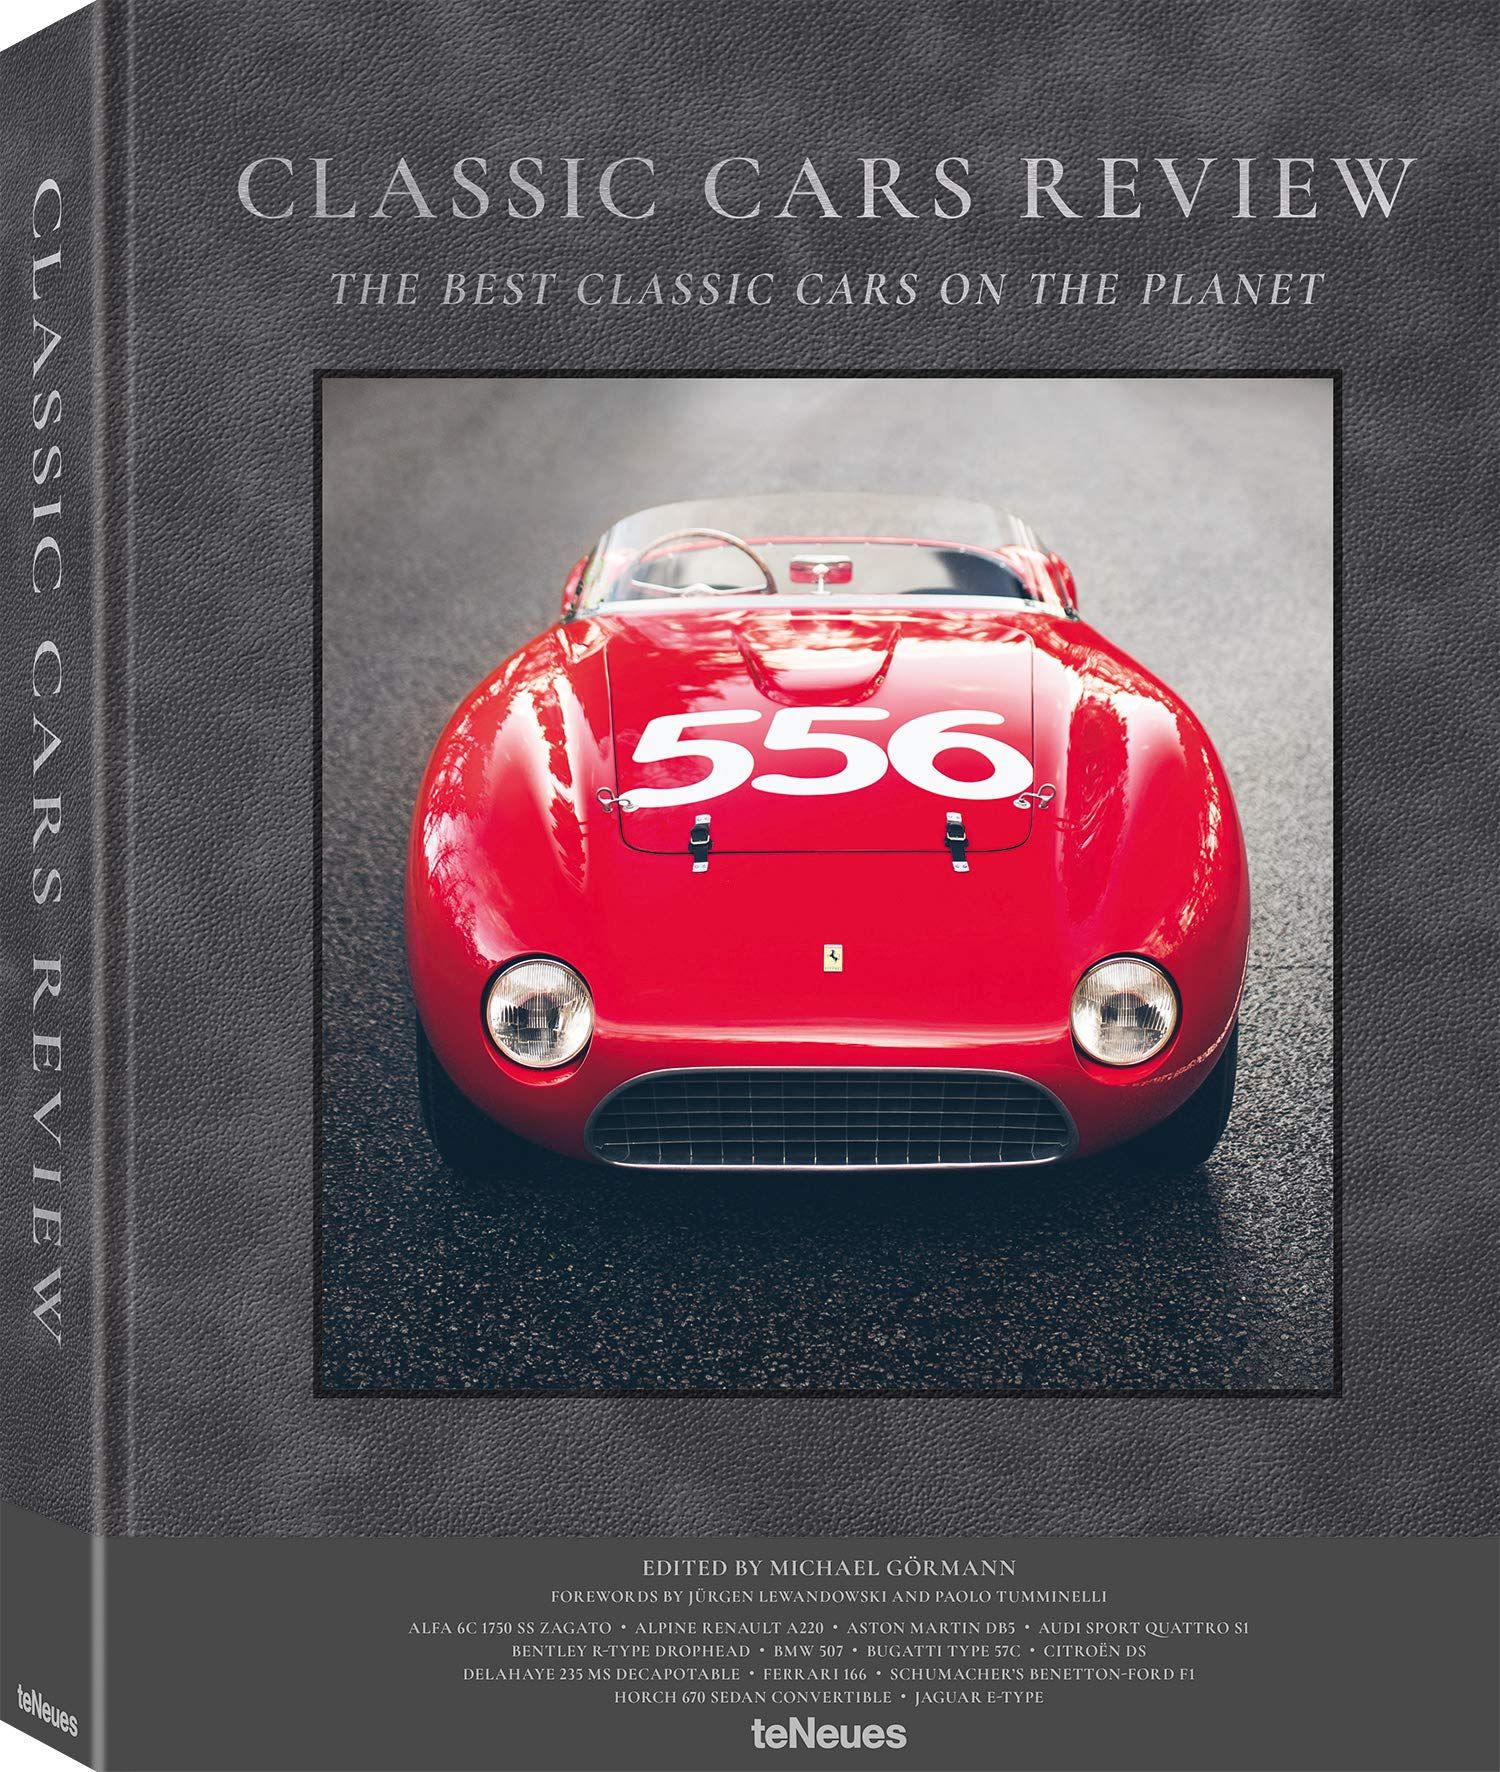 LIVRO-THE-BEST-CLASSIC-CARS